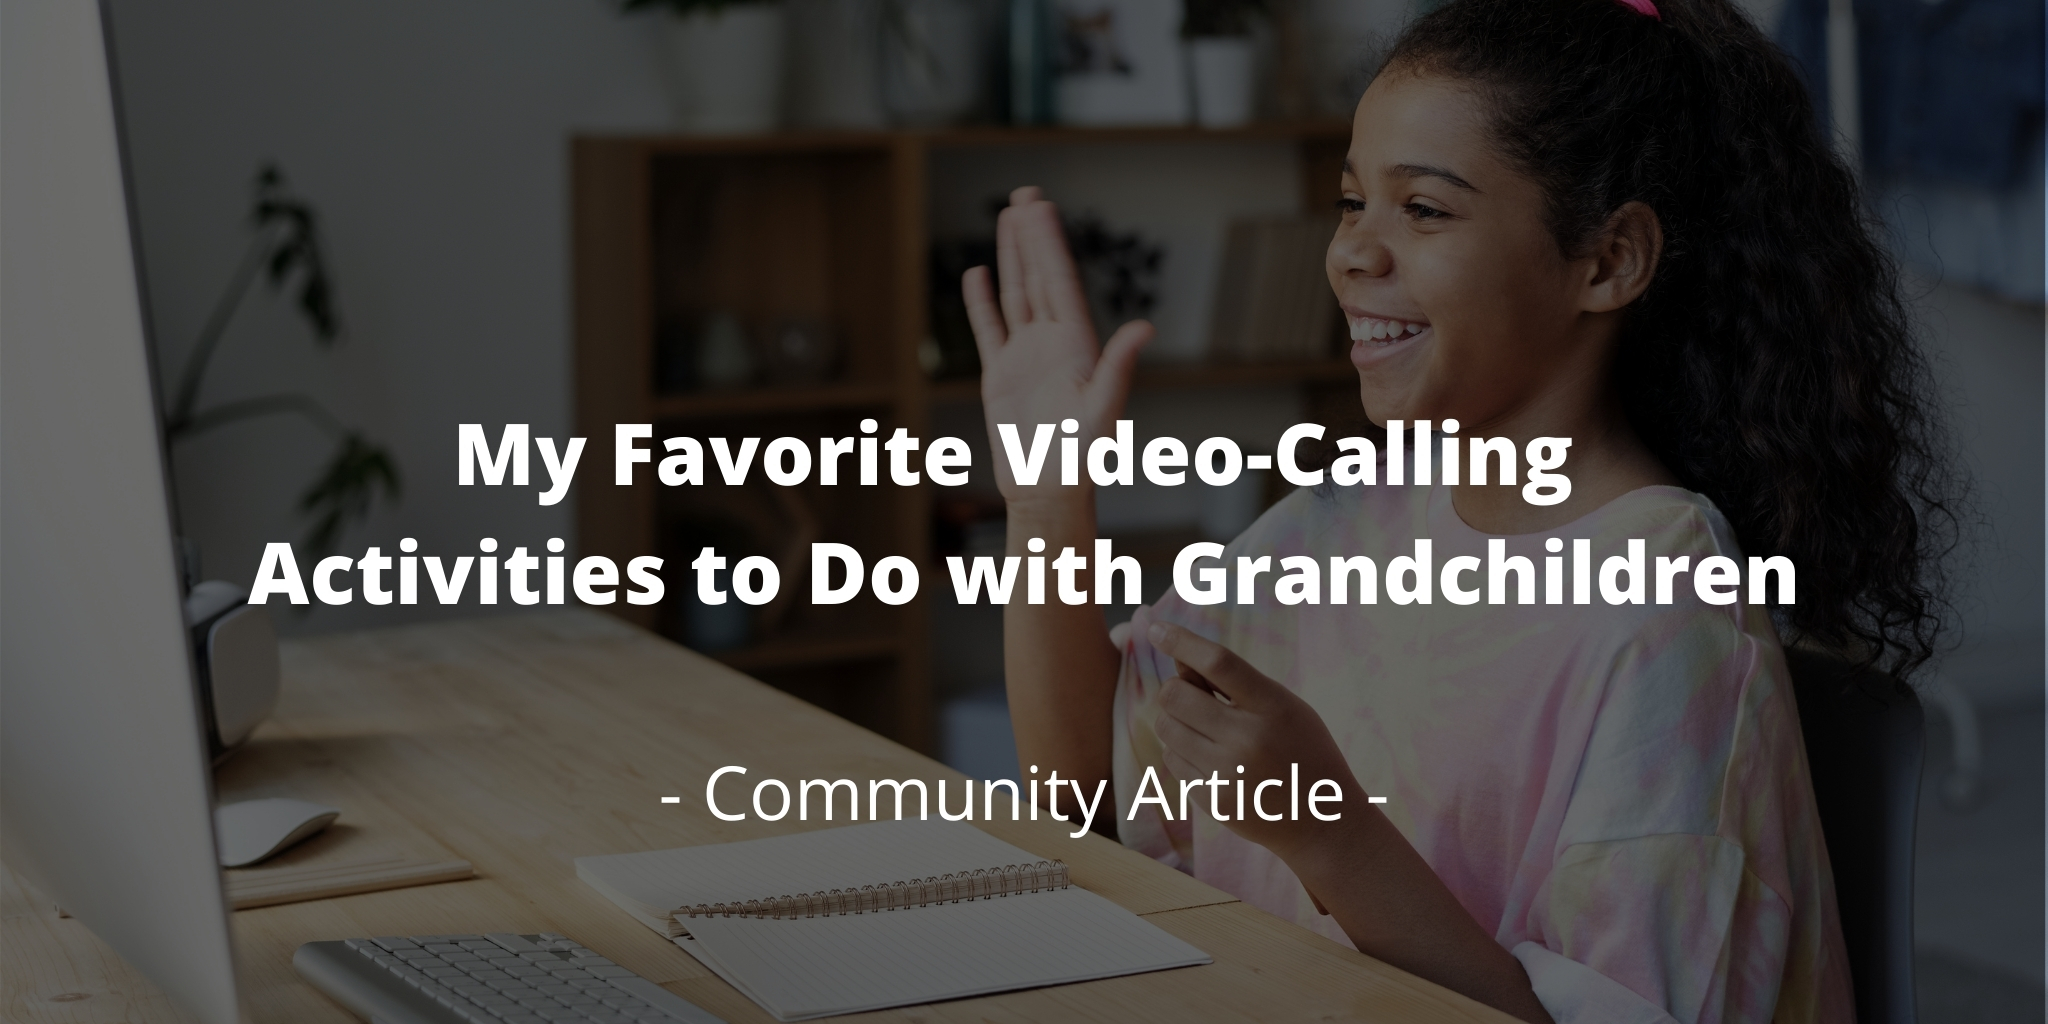 My Favorite Video-Calling Activities to Do with Grandchildren